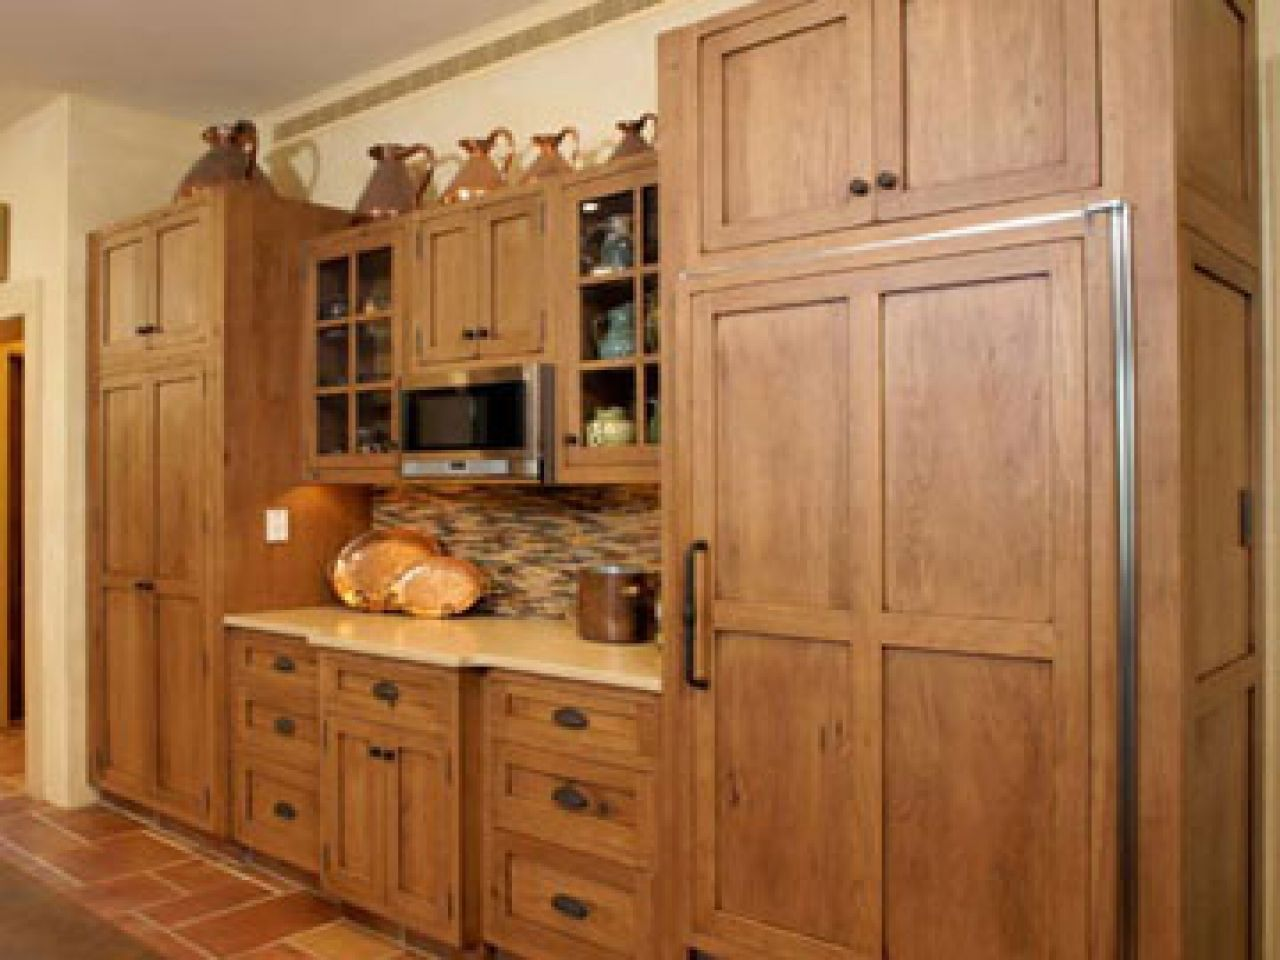 Alder Shaker Style Kitchen Cabinets Shaker Style Kitchen Cabinets Shaker Style Kitchens Kitchen Cabinet Styles